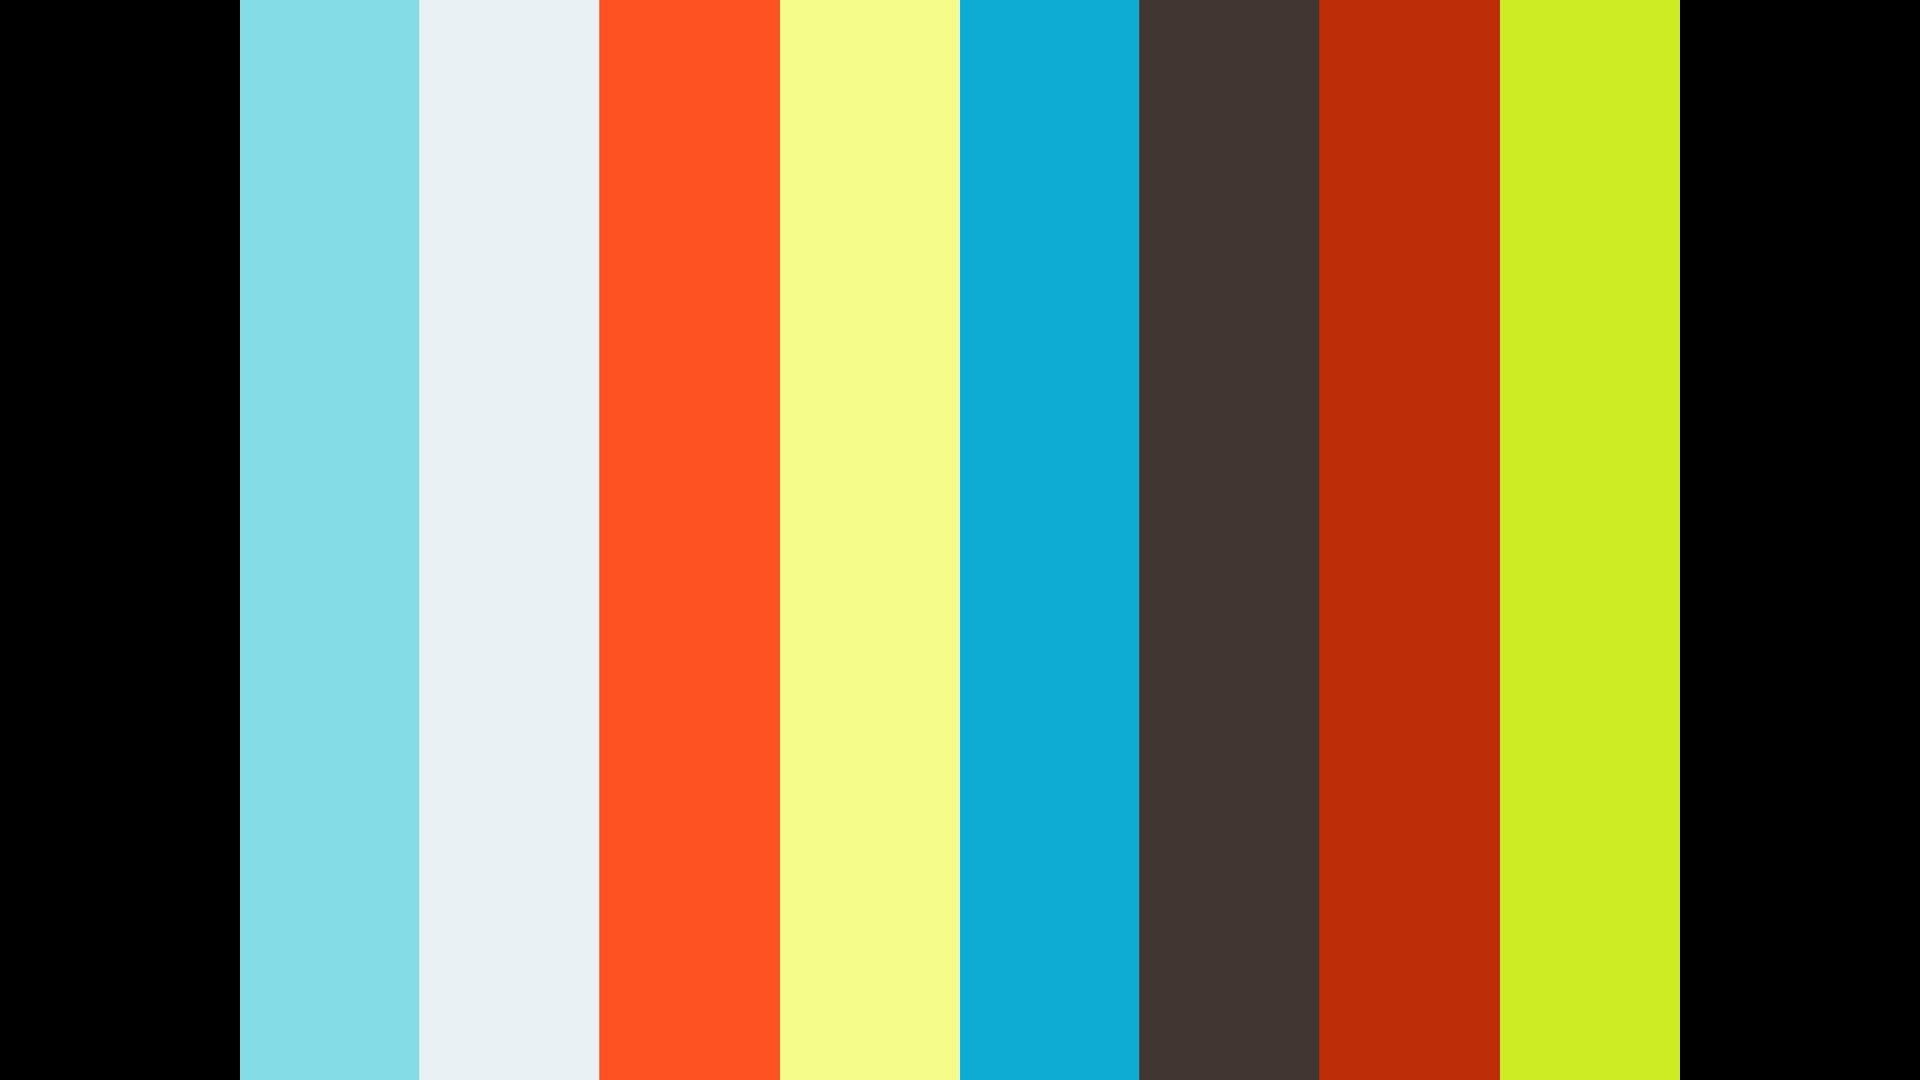 Market News #95. GM forms new JV. Tesco may sell Asian stores. BP increases stake in Lightsource BP.